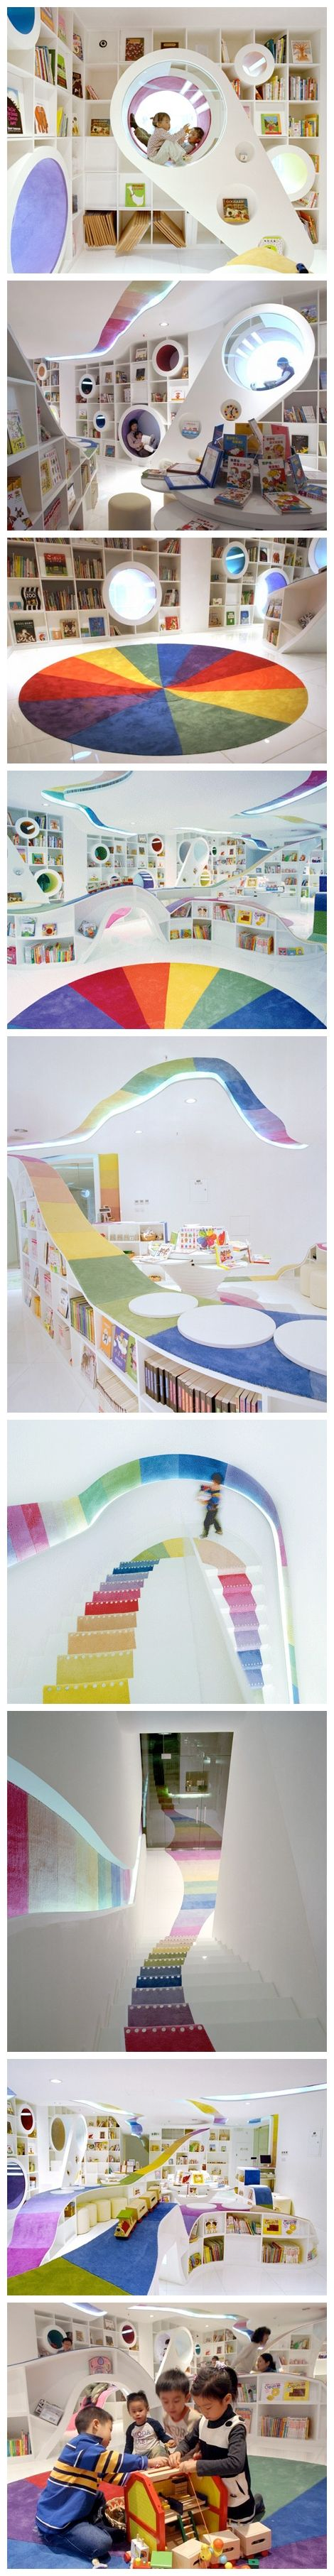 【儿童书店,北京,designed by SAKO ,Bookstore for children in Beijing,China I want to go here when I learn enough Chinese